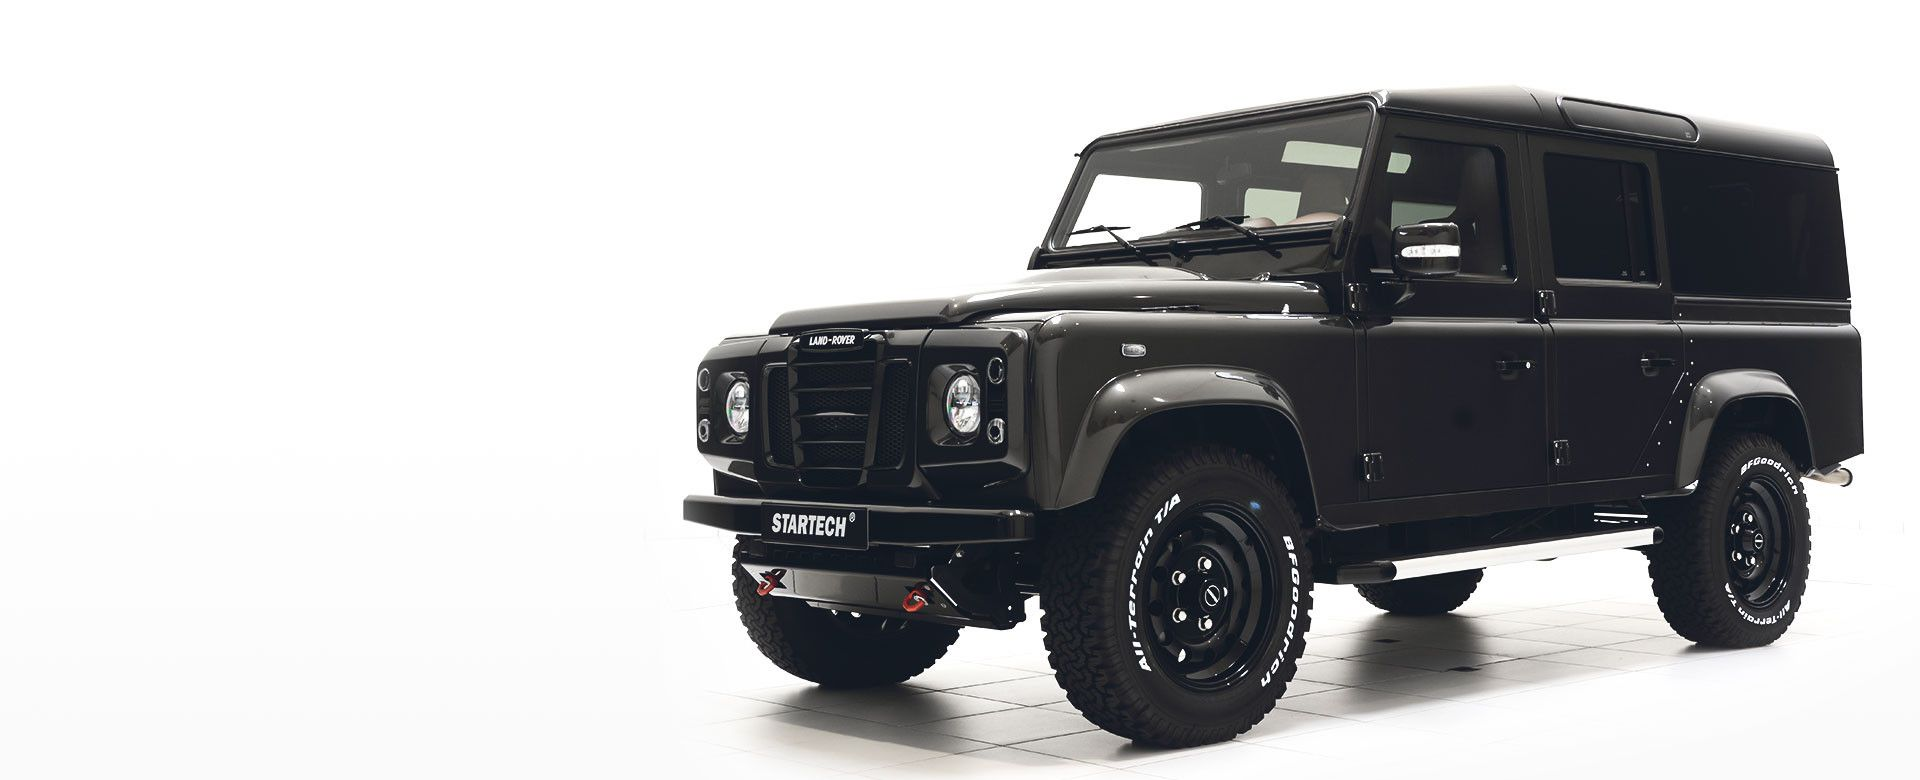 Land Rover Defender Tuning Startech Land Rover Defender Land Rover Land Rover Defender 110